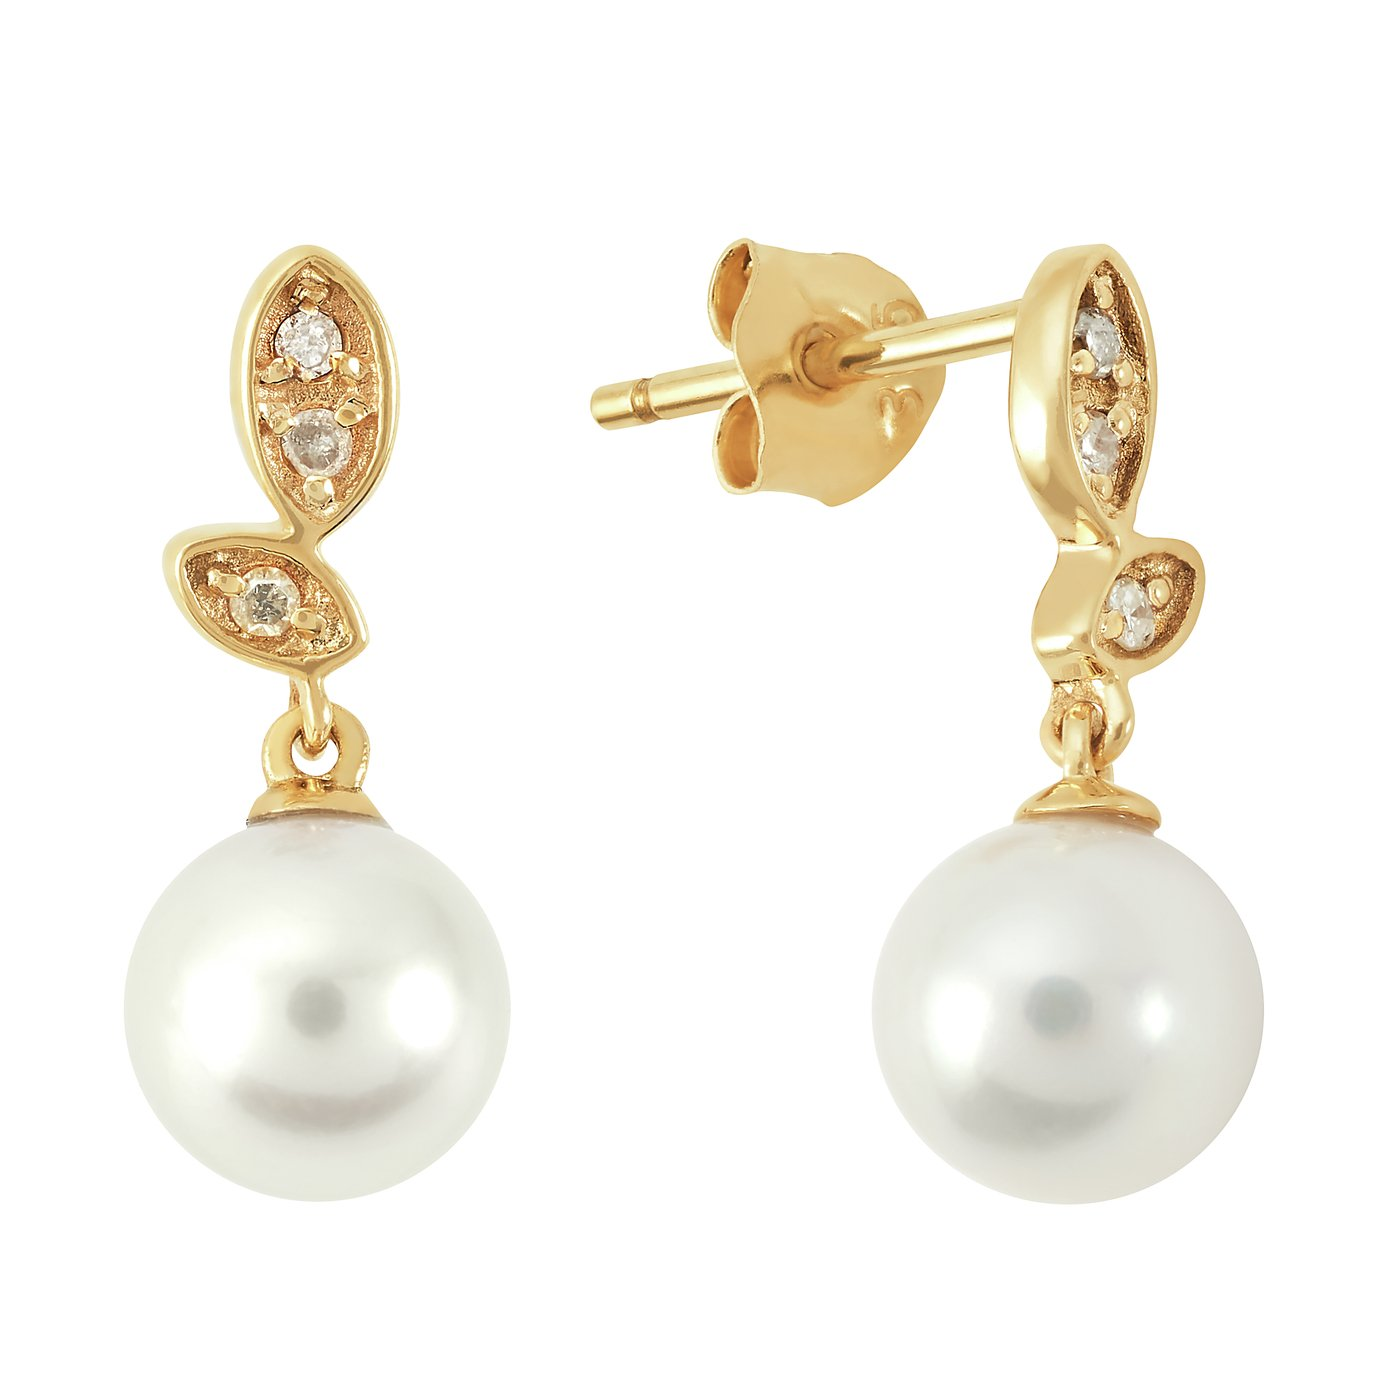 Revere 9ct Gold Cultured Freshwater Pearl & Diamond Earrings